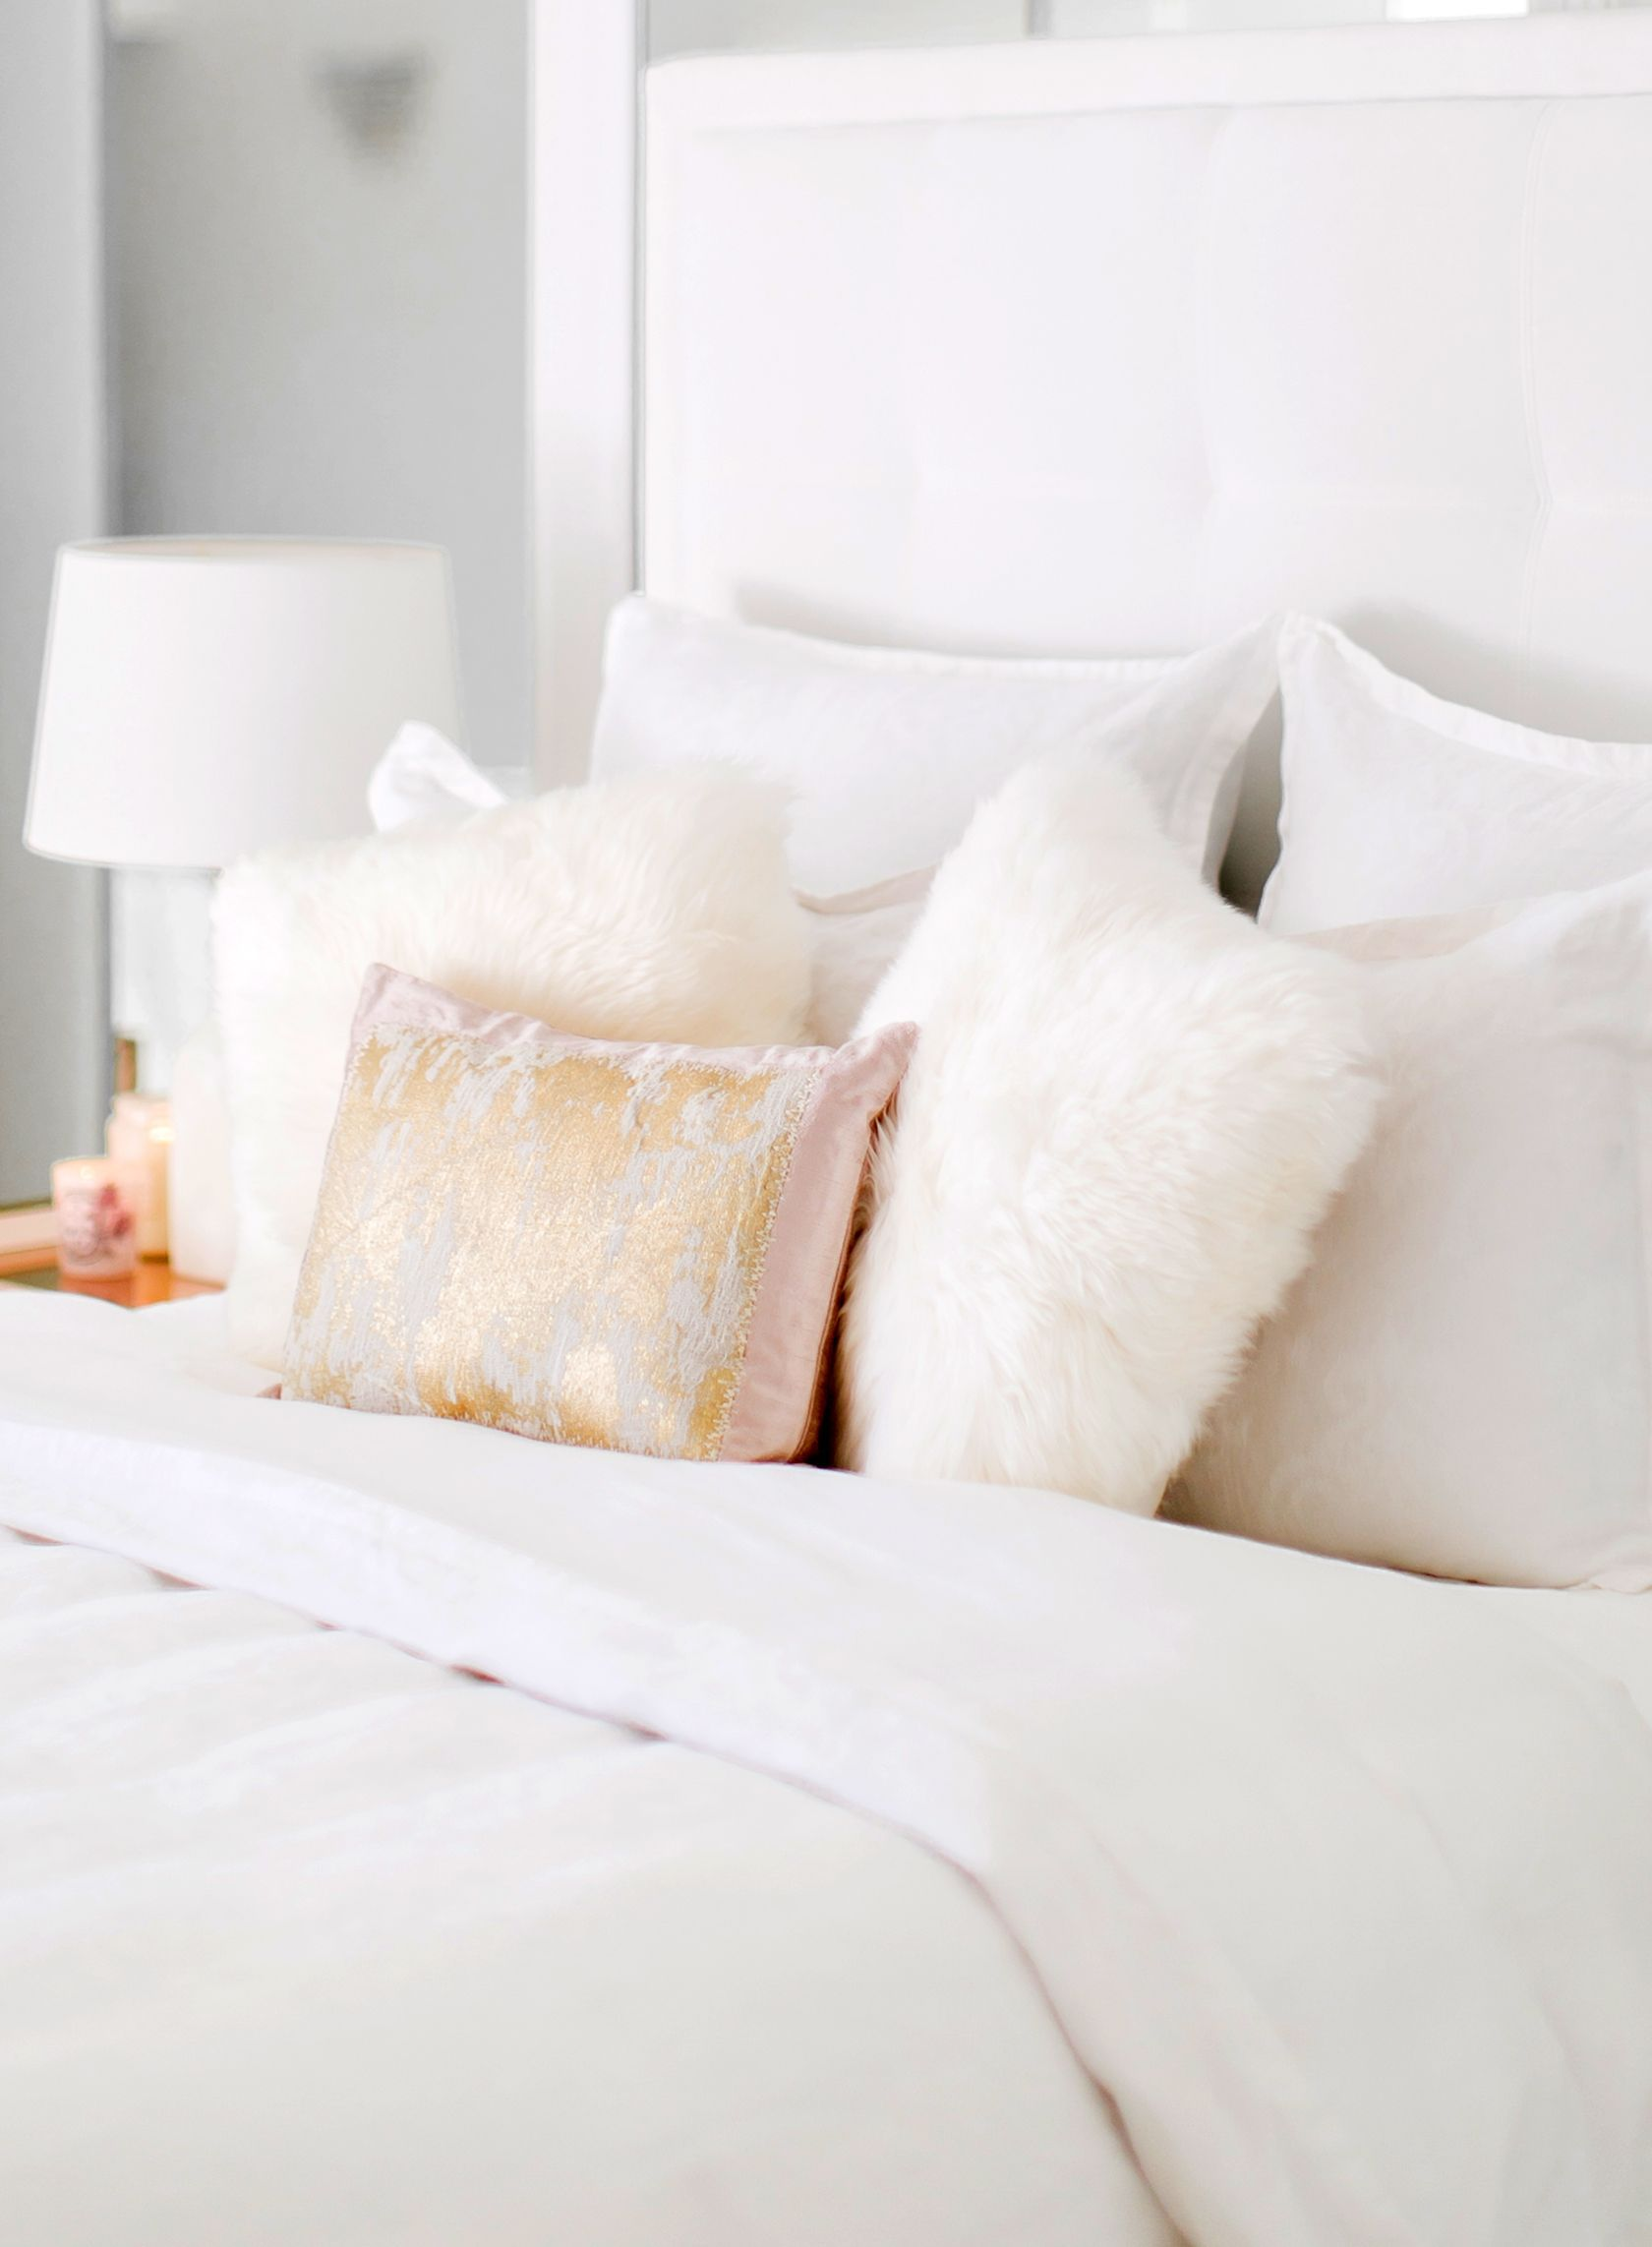 Sydne Style Shares Bedroom Decorating Ideas With Ugg Fluffy Pillow And Blush Gold Decorative Pillows Fluffypillow